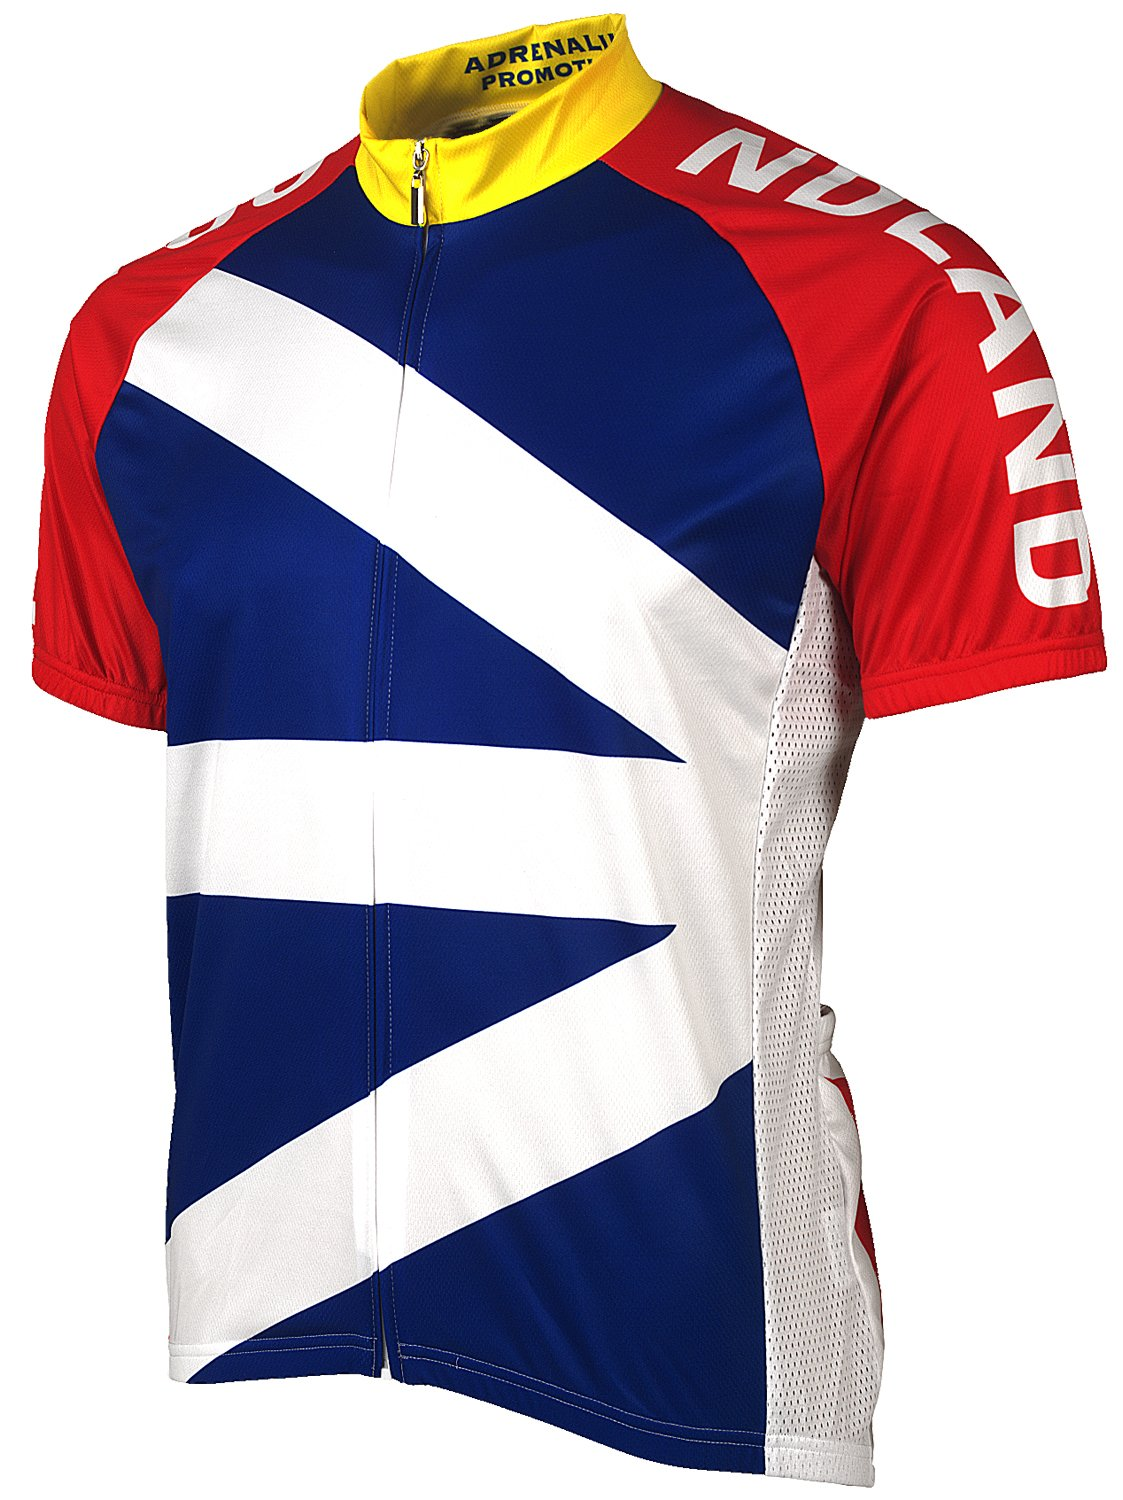 Adrenaline Promotions Canadian Provinces Newfoundland Cycling Jersey ADRE2